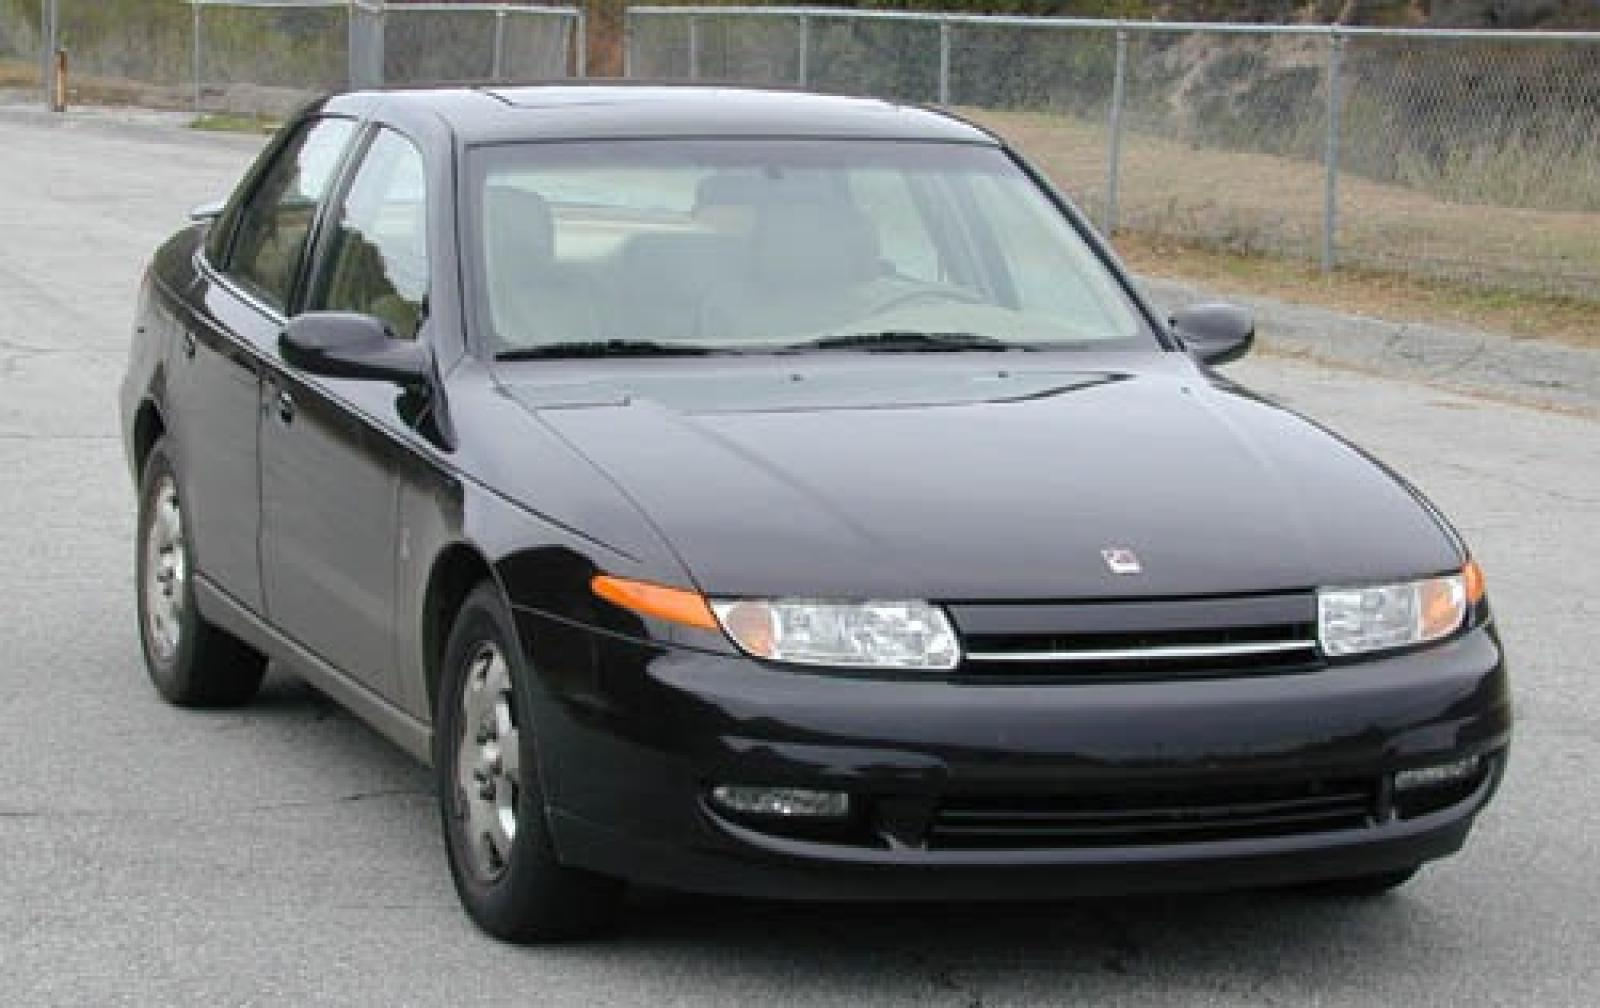 Images of 2001 saturn l series sc 2001 saturn l series information and photos zombiedrive vanachro Images